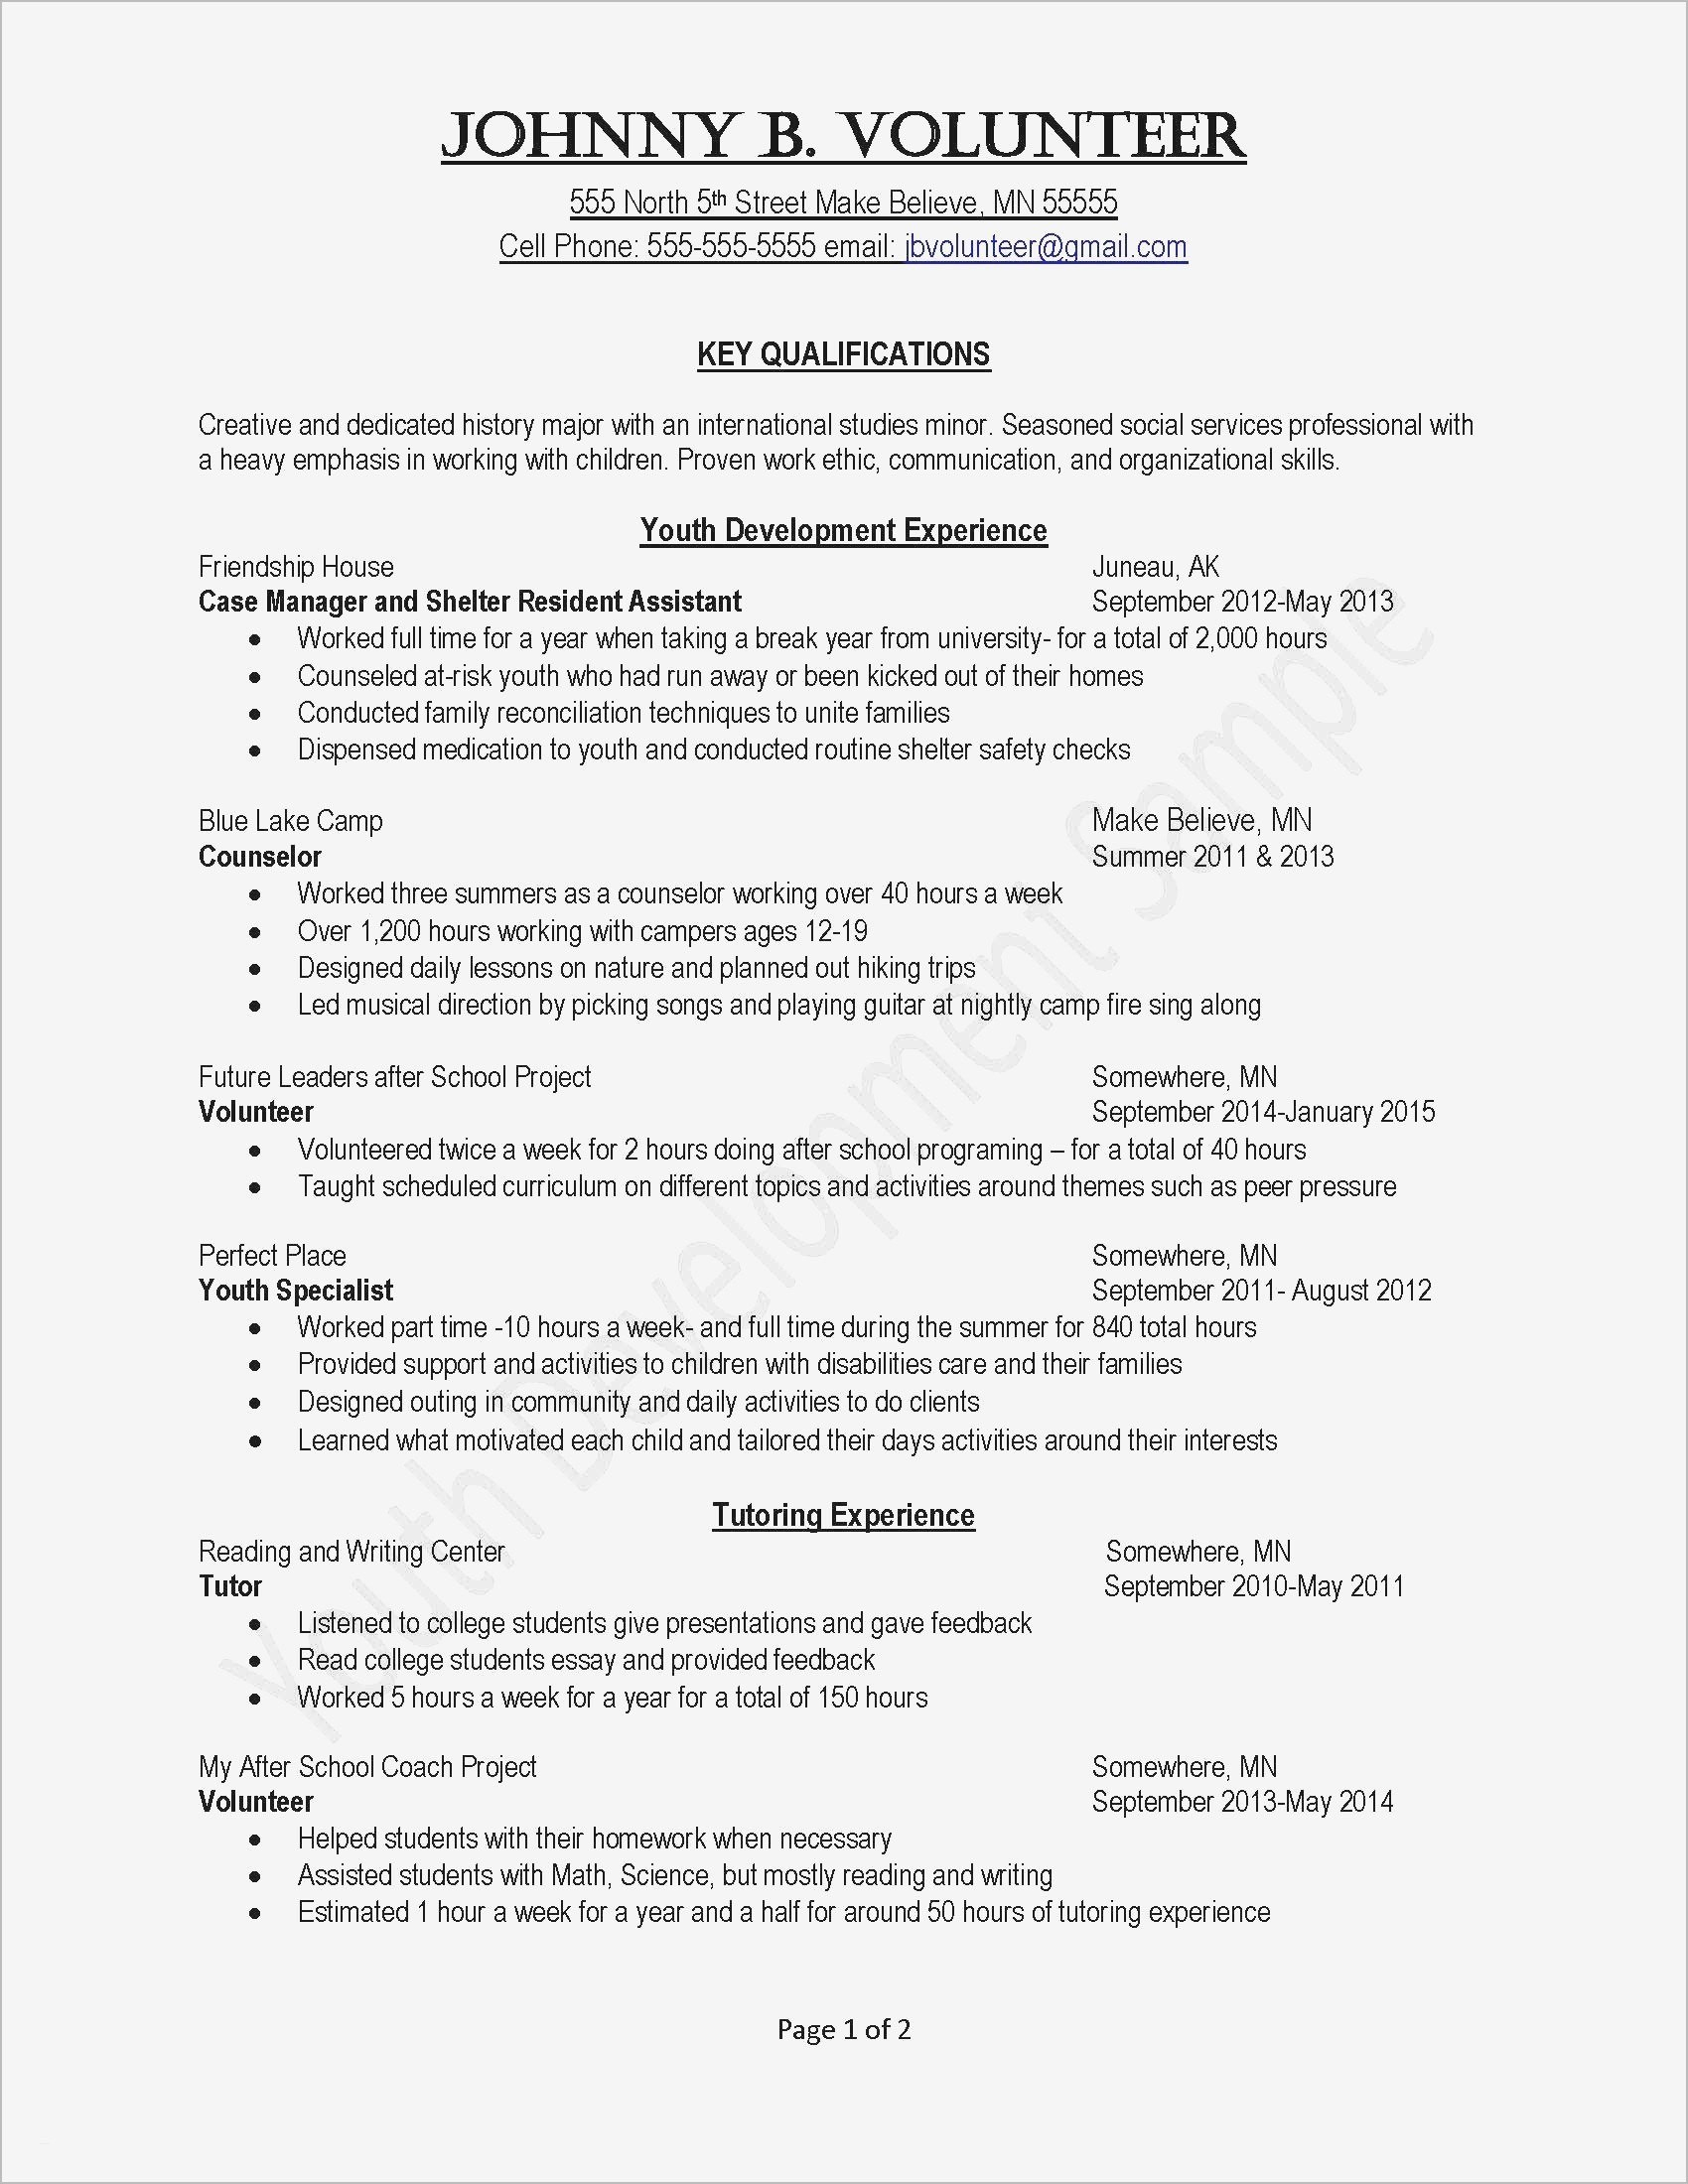 Free Letter Of Recommendation Template - Free Letter Re Mendation for A Job Refrence Job Fer Letter